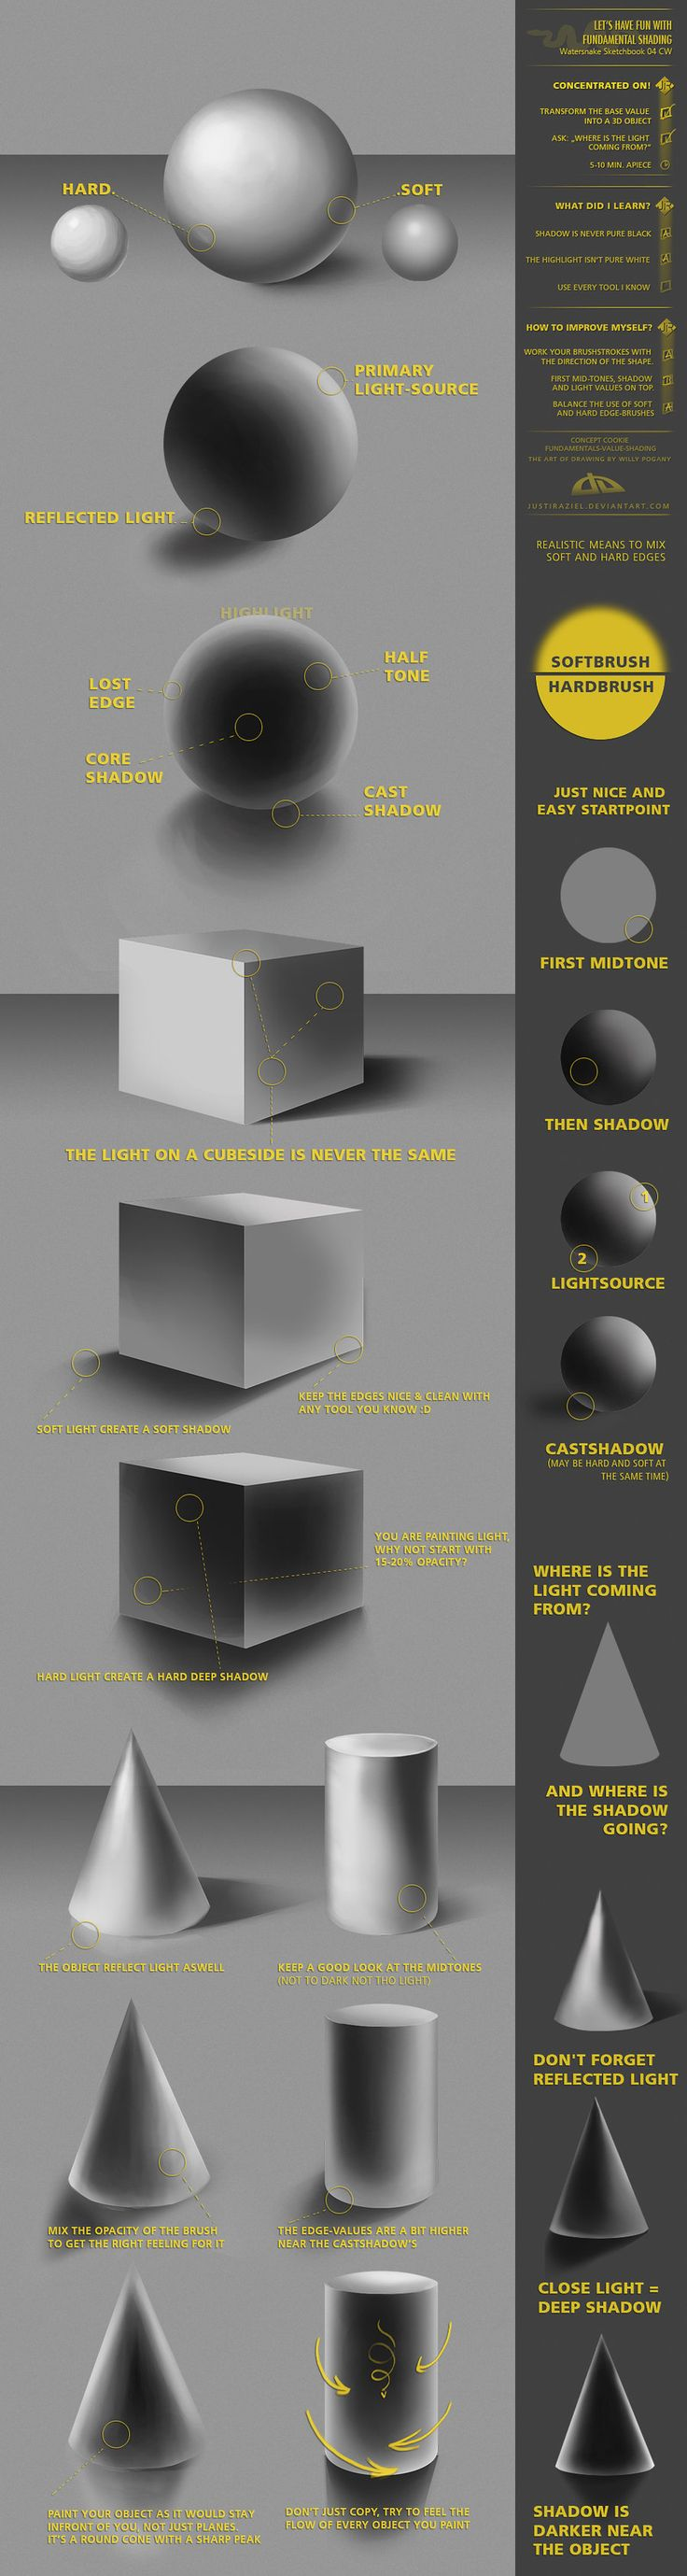 How to do shadows, 3-d form poster. great for teaching value and shading geometric forms in art lessons